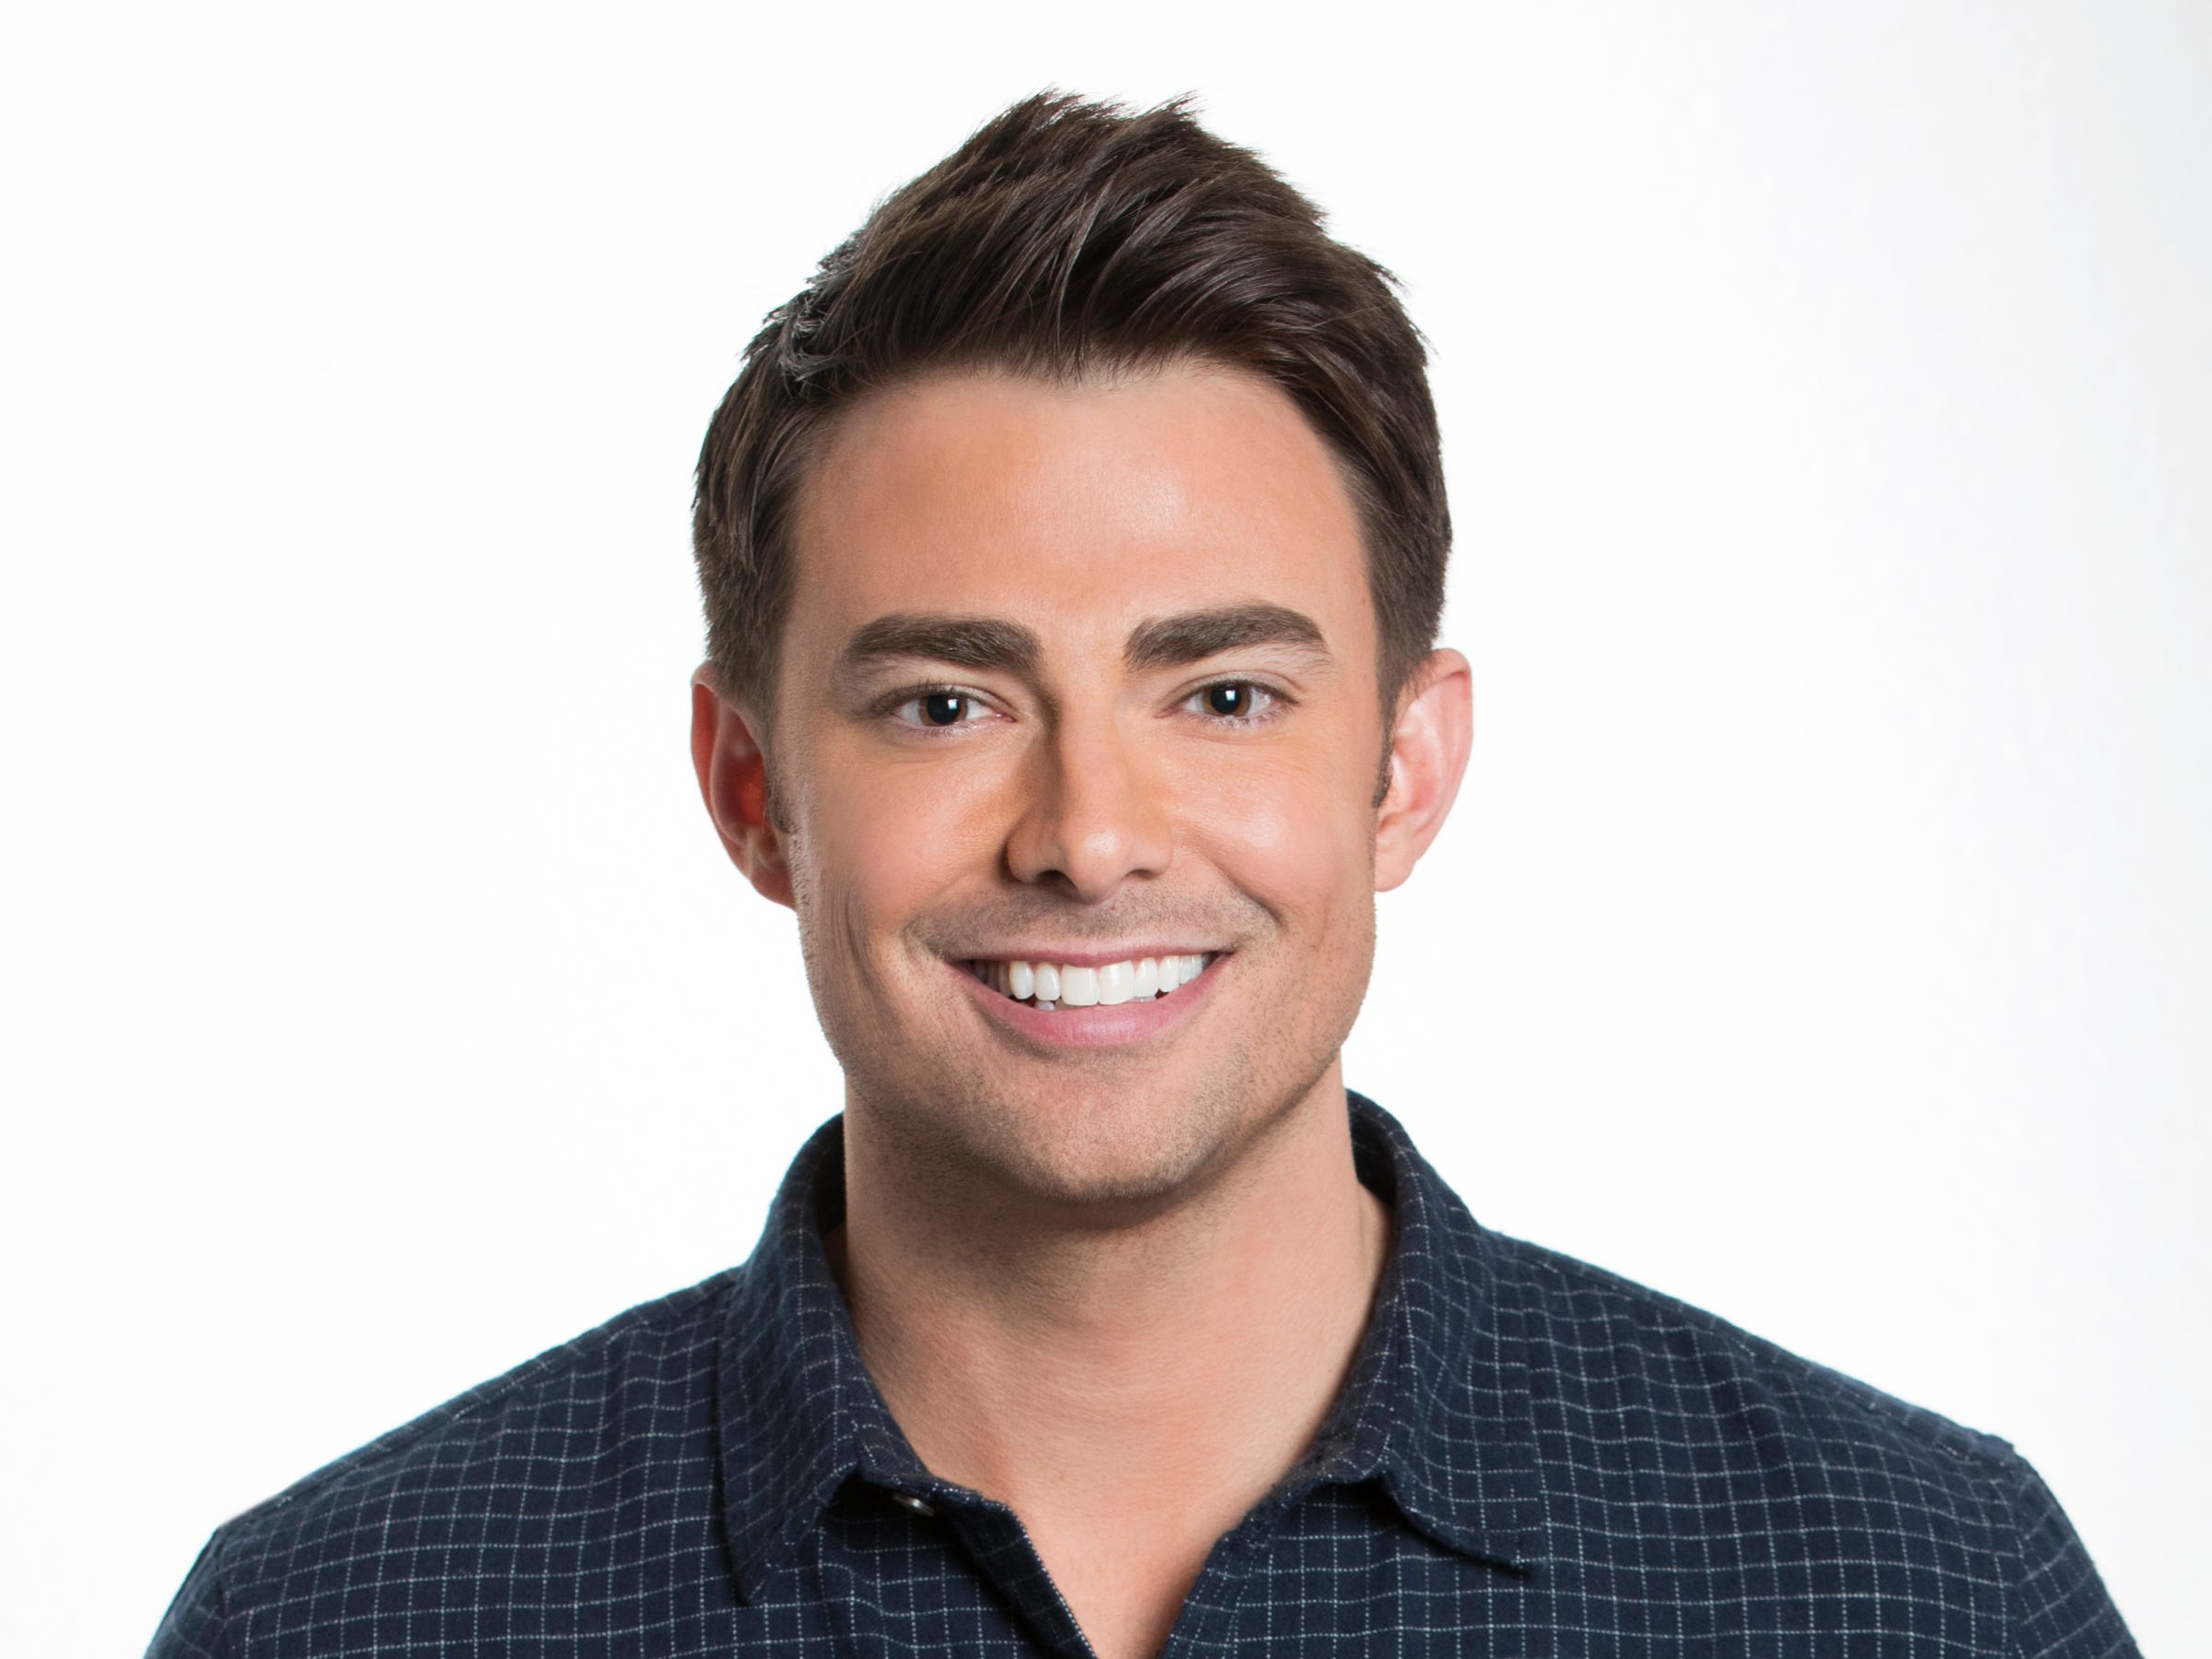 Jonathan Bennett to participate in the second season of BIG BROTHER: CELEBRITY EDITION. BIG BROTHER: CELEBRITY EDITION launches with a two-night premiere event Monday, Jan. 21 (8:00-9:00 PM, ET/PT) and Tuesday, Jan. 22 (8:00-9:00 PM, ET/PT) on the CBS Television Network.   Photo: Monty Brinton/CBS  ©2019 CBS Broadcasting, Inc. All Rights Reserved